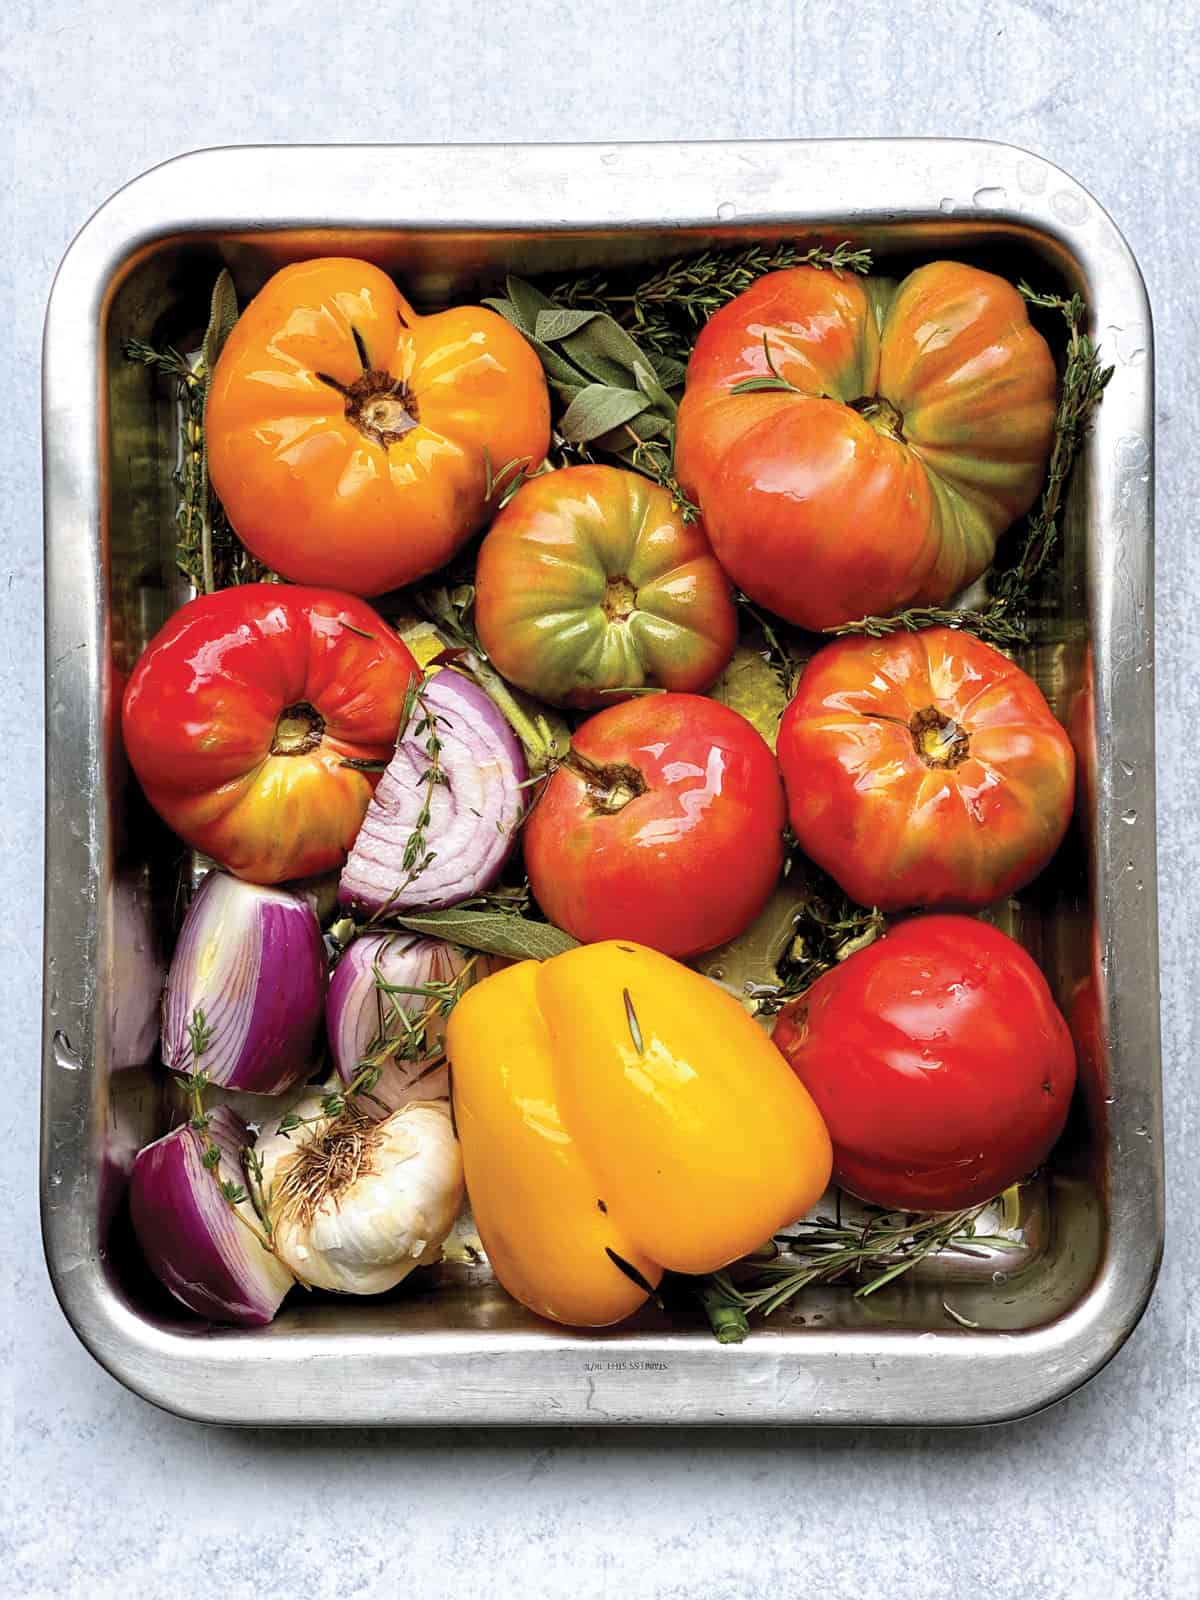 Tomatoes, onions, garlic and bell pepper in a baking dish with fresh herbs.